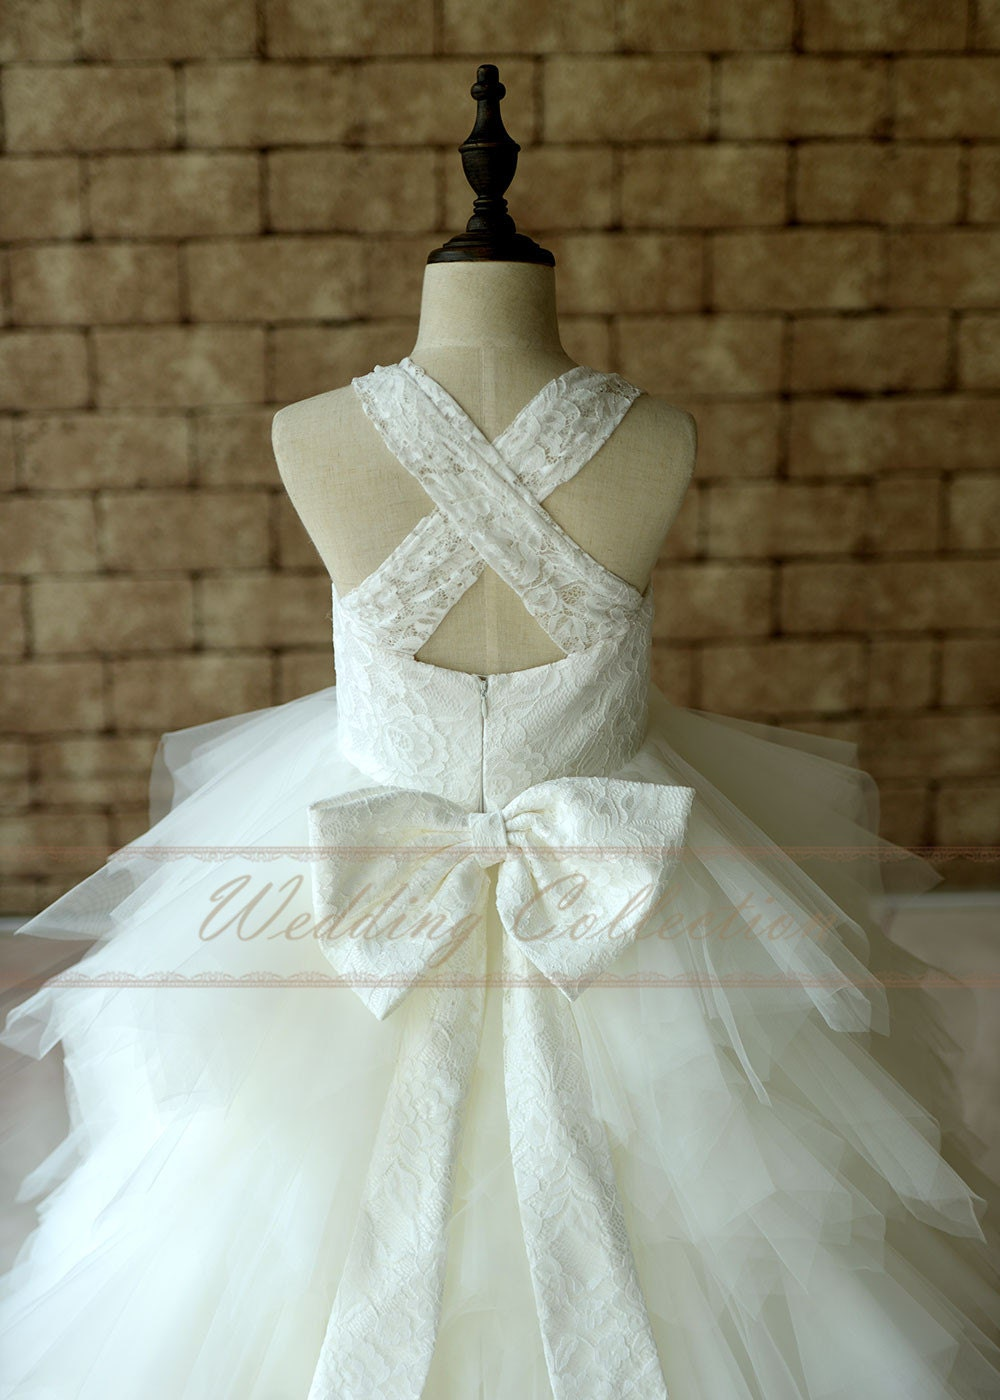 flower girl dress lace - photo #14